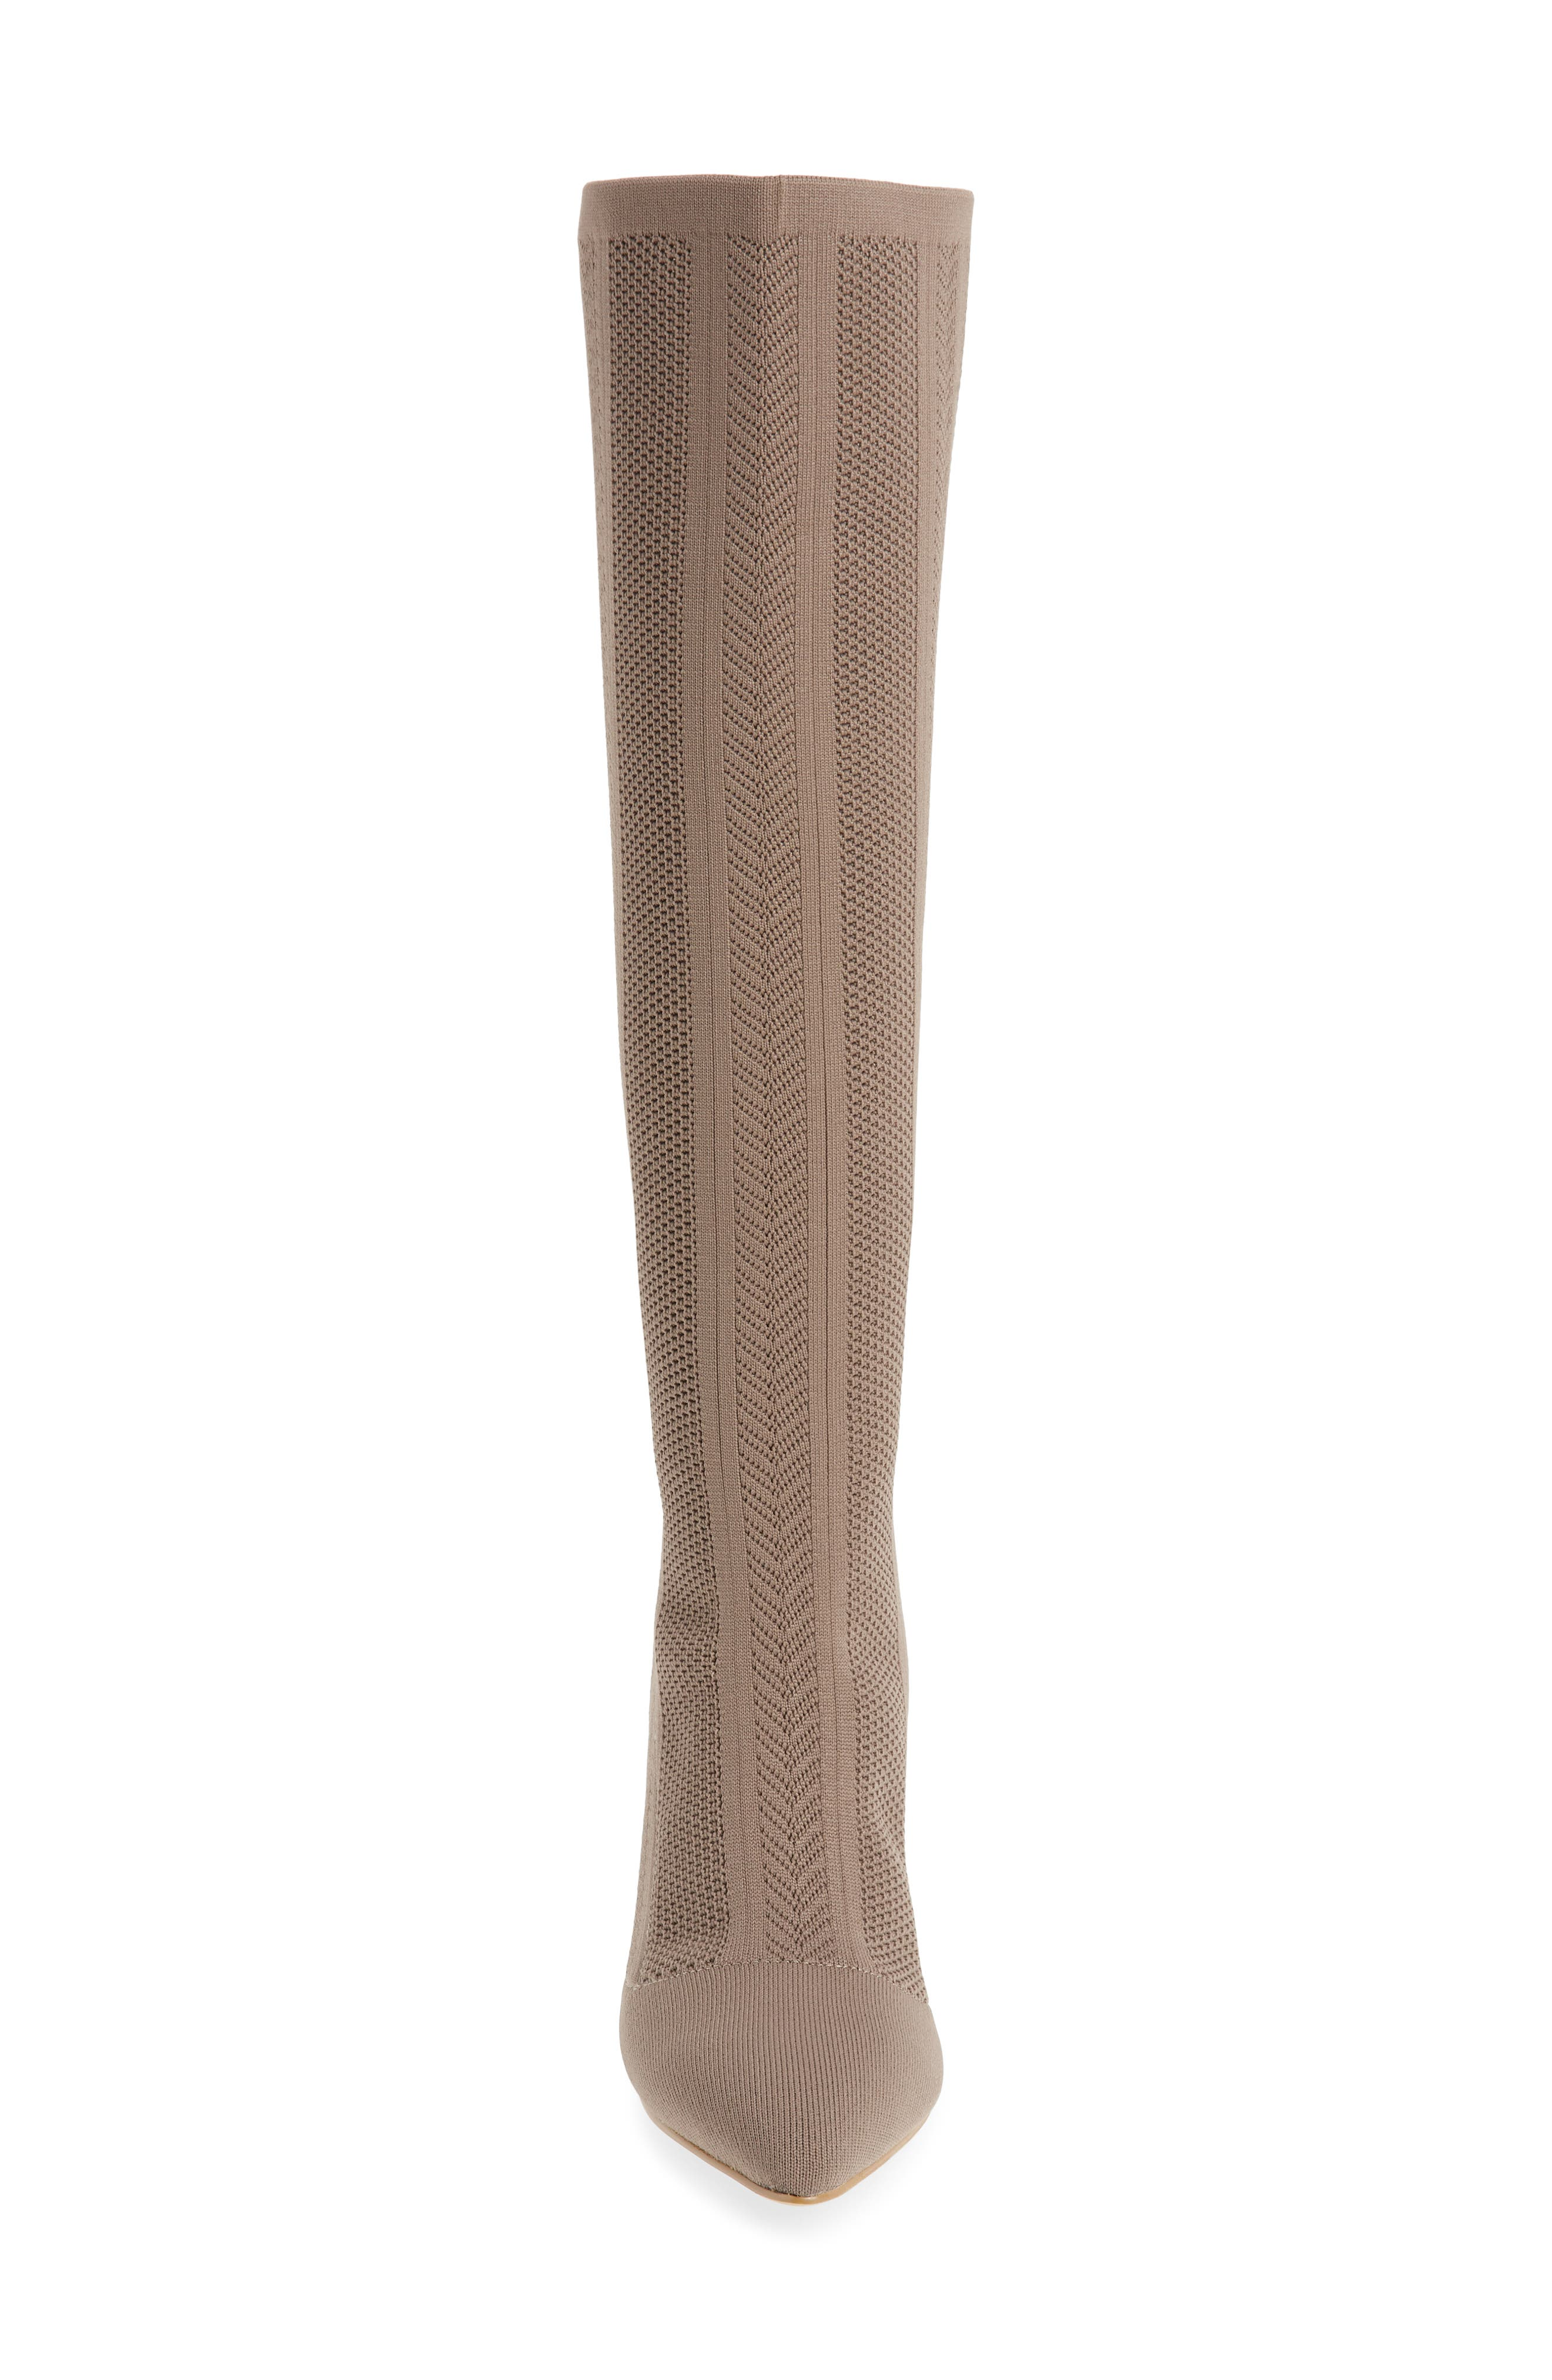 Davis Knit Boot,                             Alternate thumbnail 4, color,                             TAUPE FABRIC